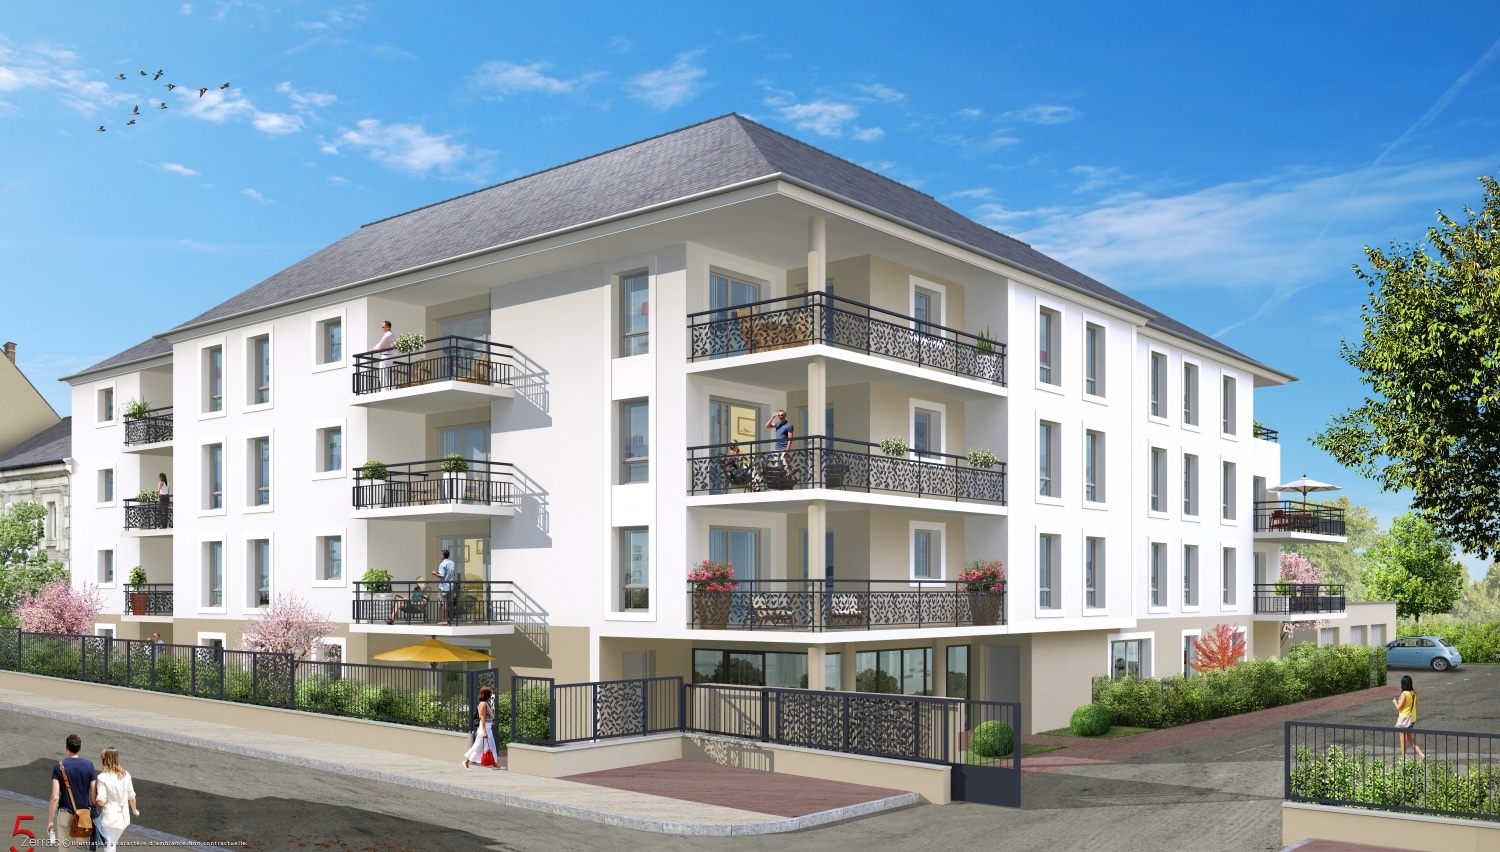 Programme immobilier neuf BOURGES Bourges | Photo 1/1